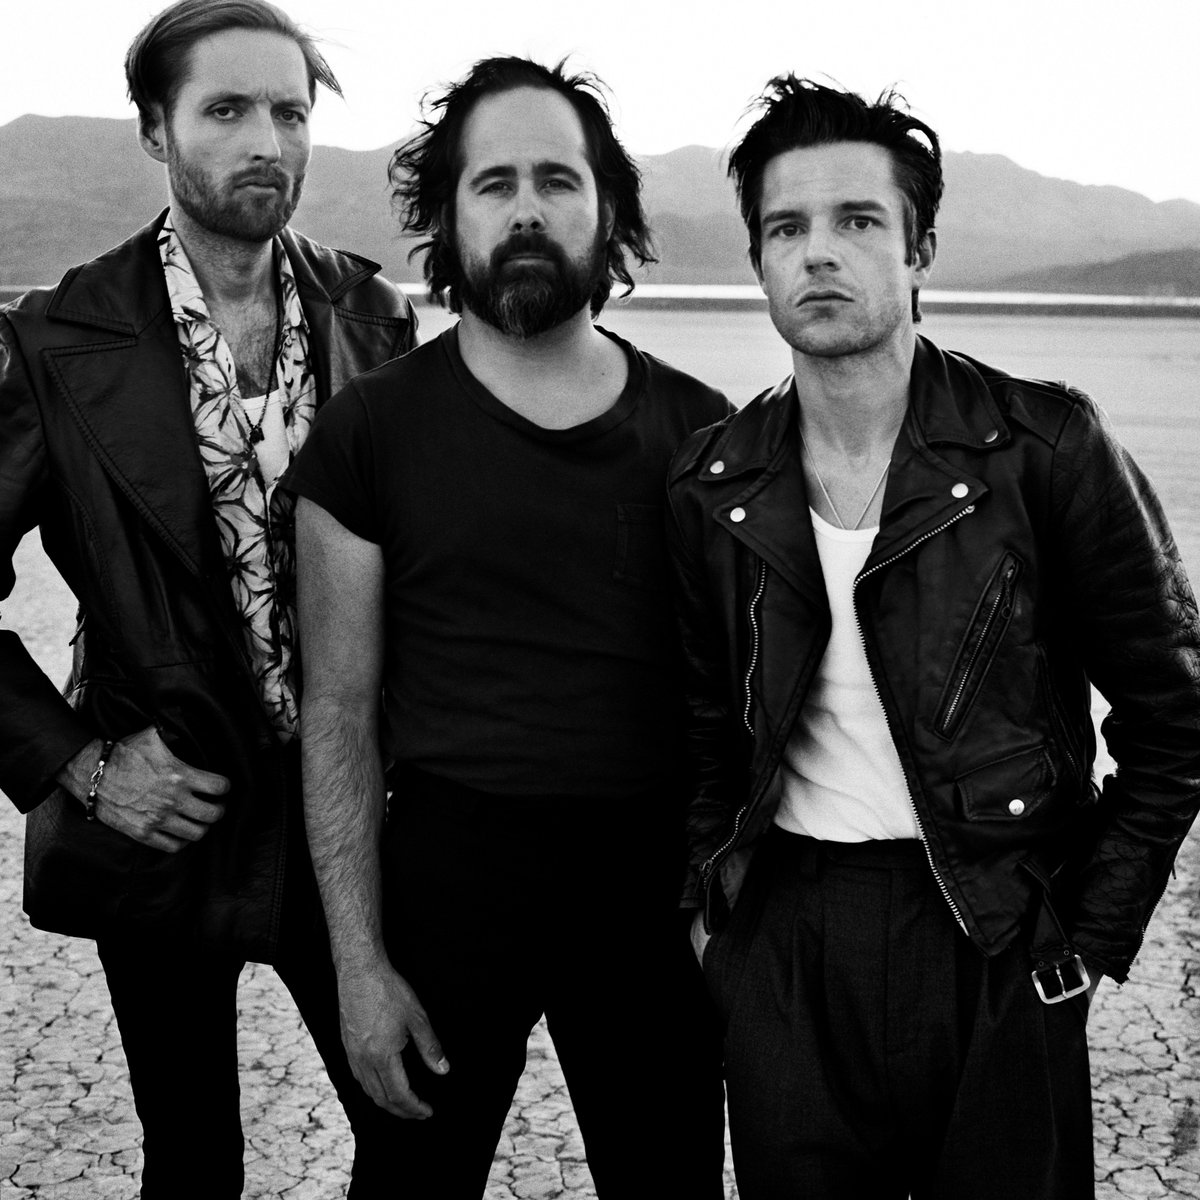 .@thekillers are taking a stand. Listen to their new song #LandOfTheFree now. https://t.co/o8iCGF0IFq